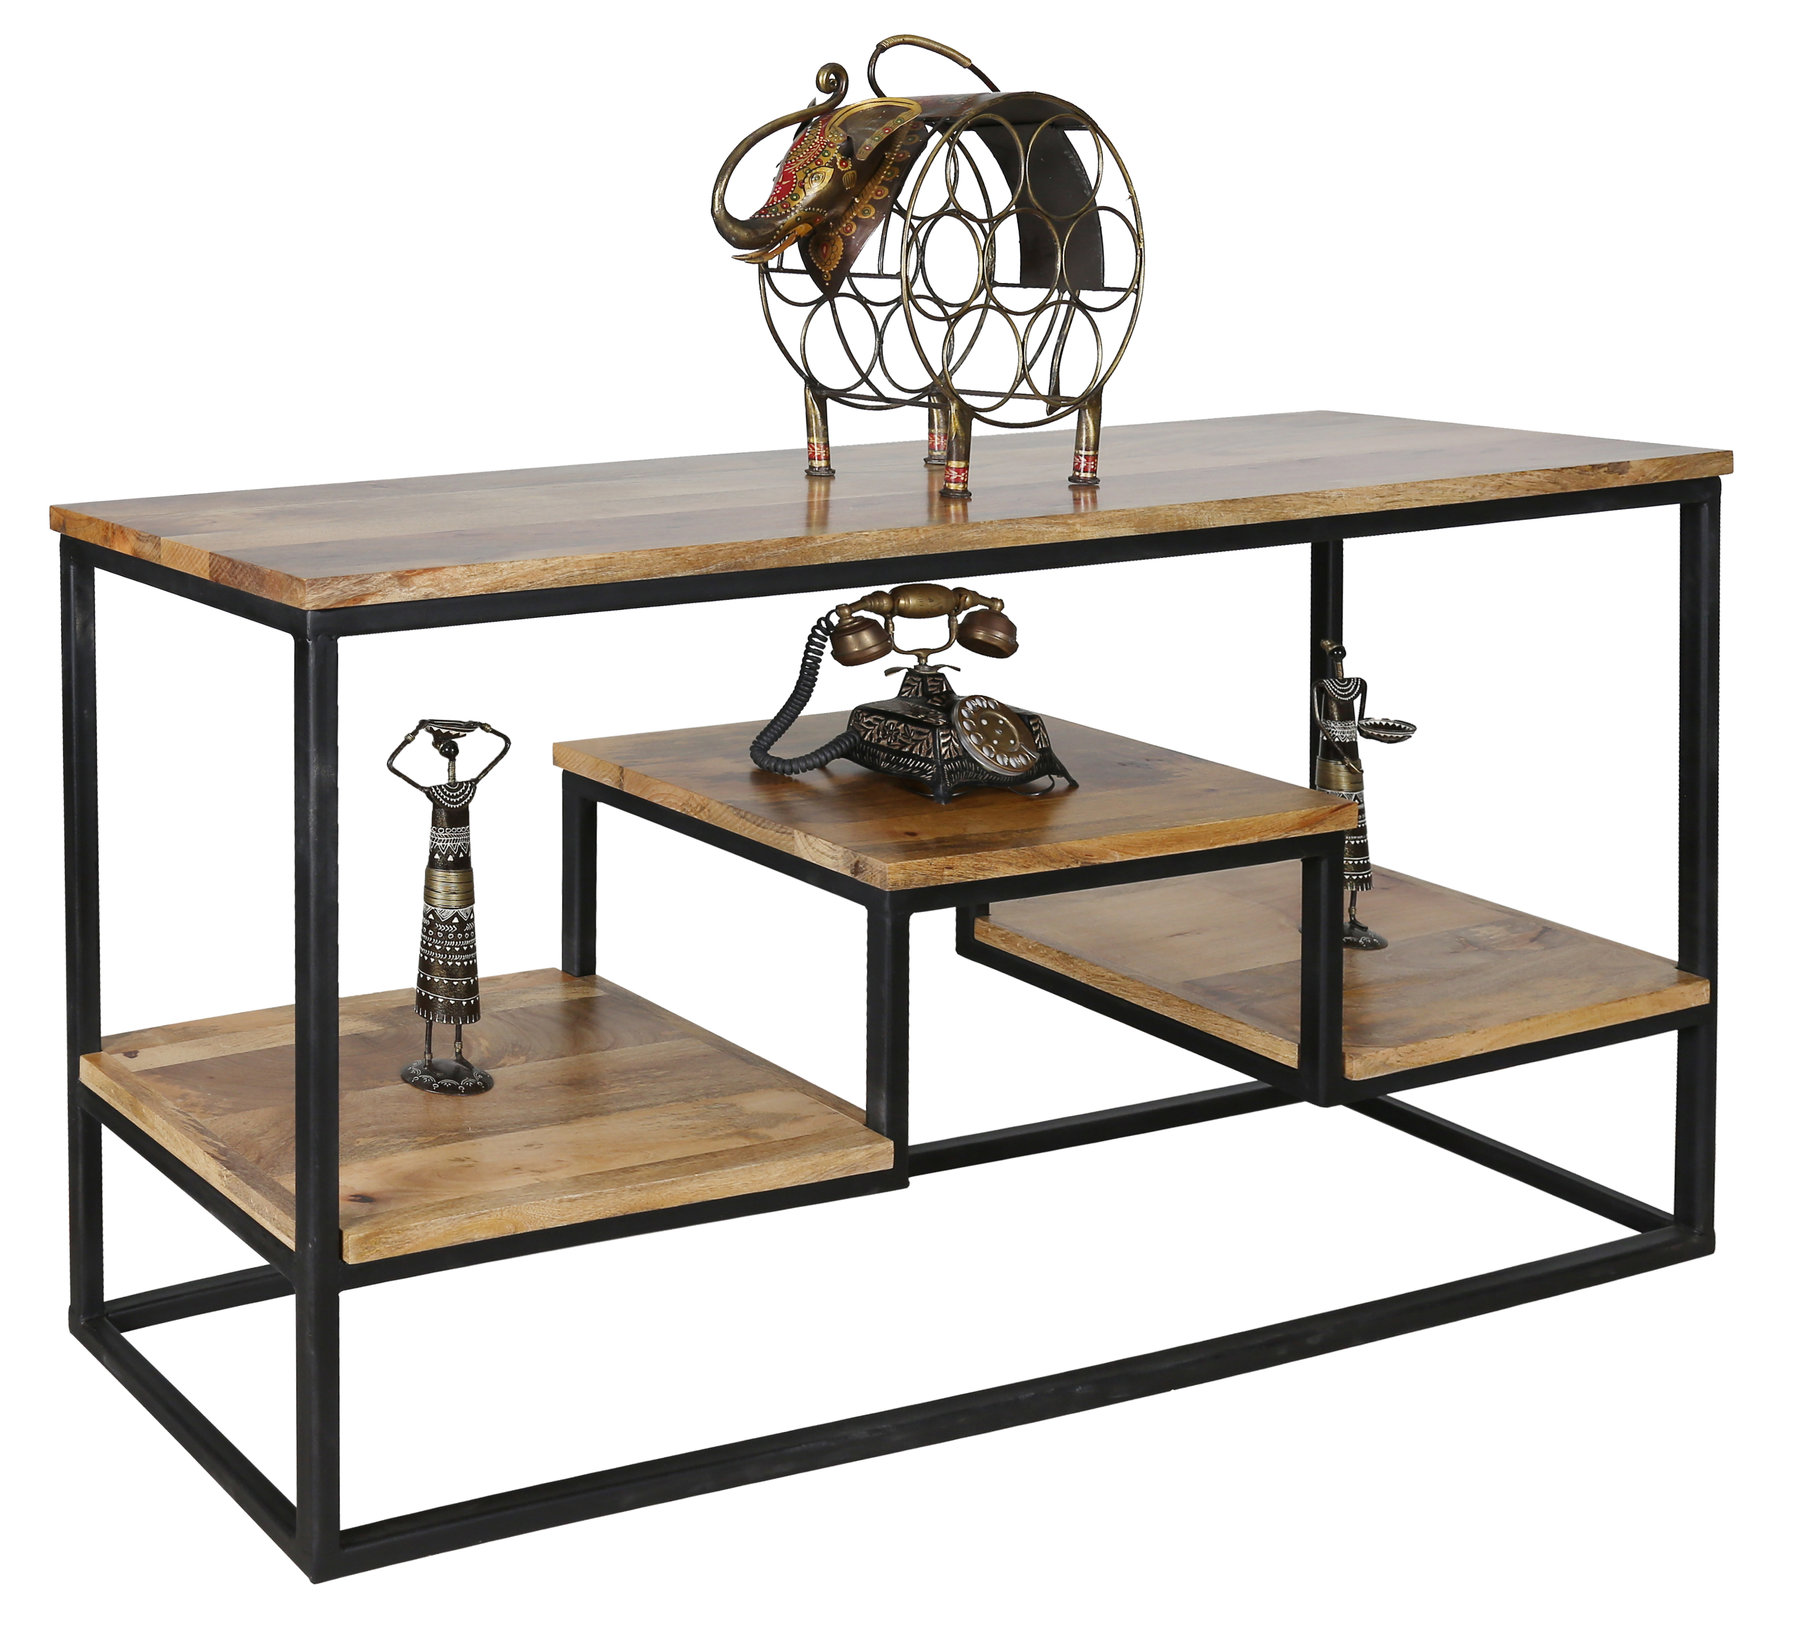 Table Bois Metal Design: Large Industrial Style Light Mango Wood Console Table With